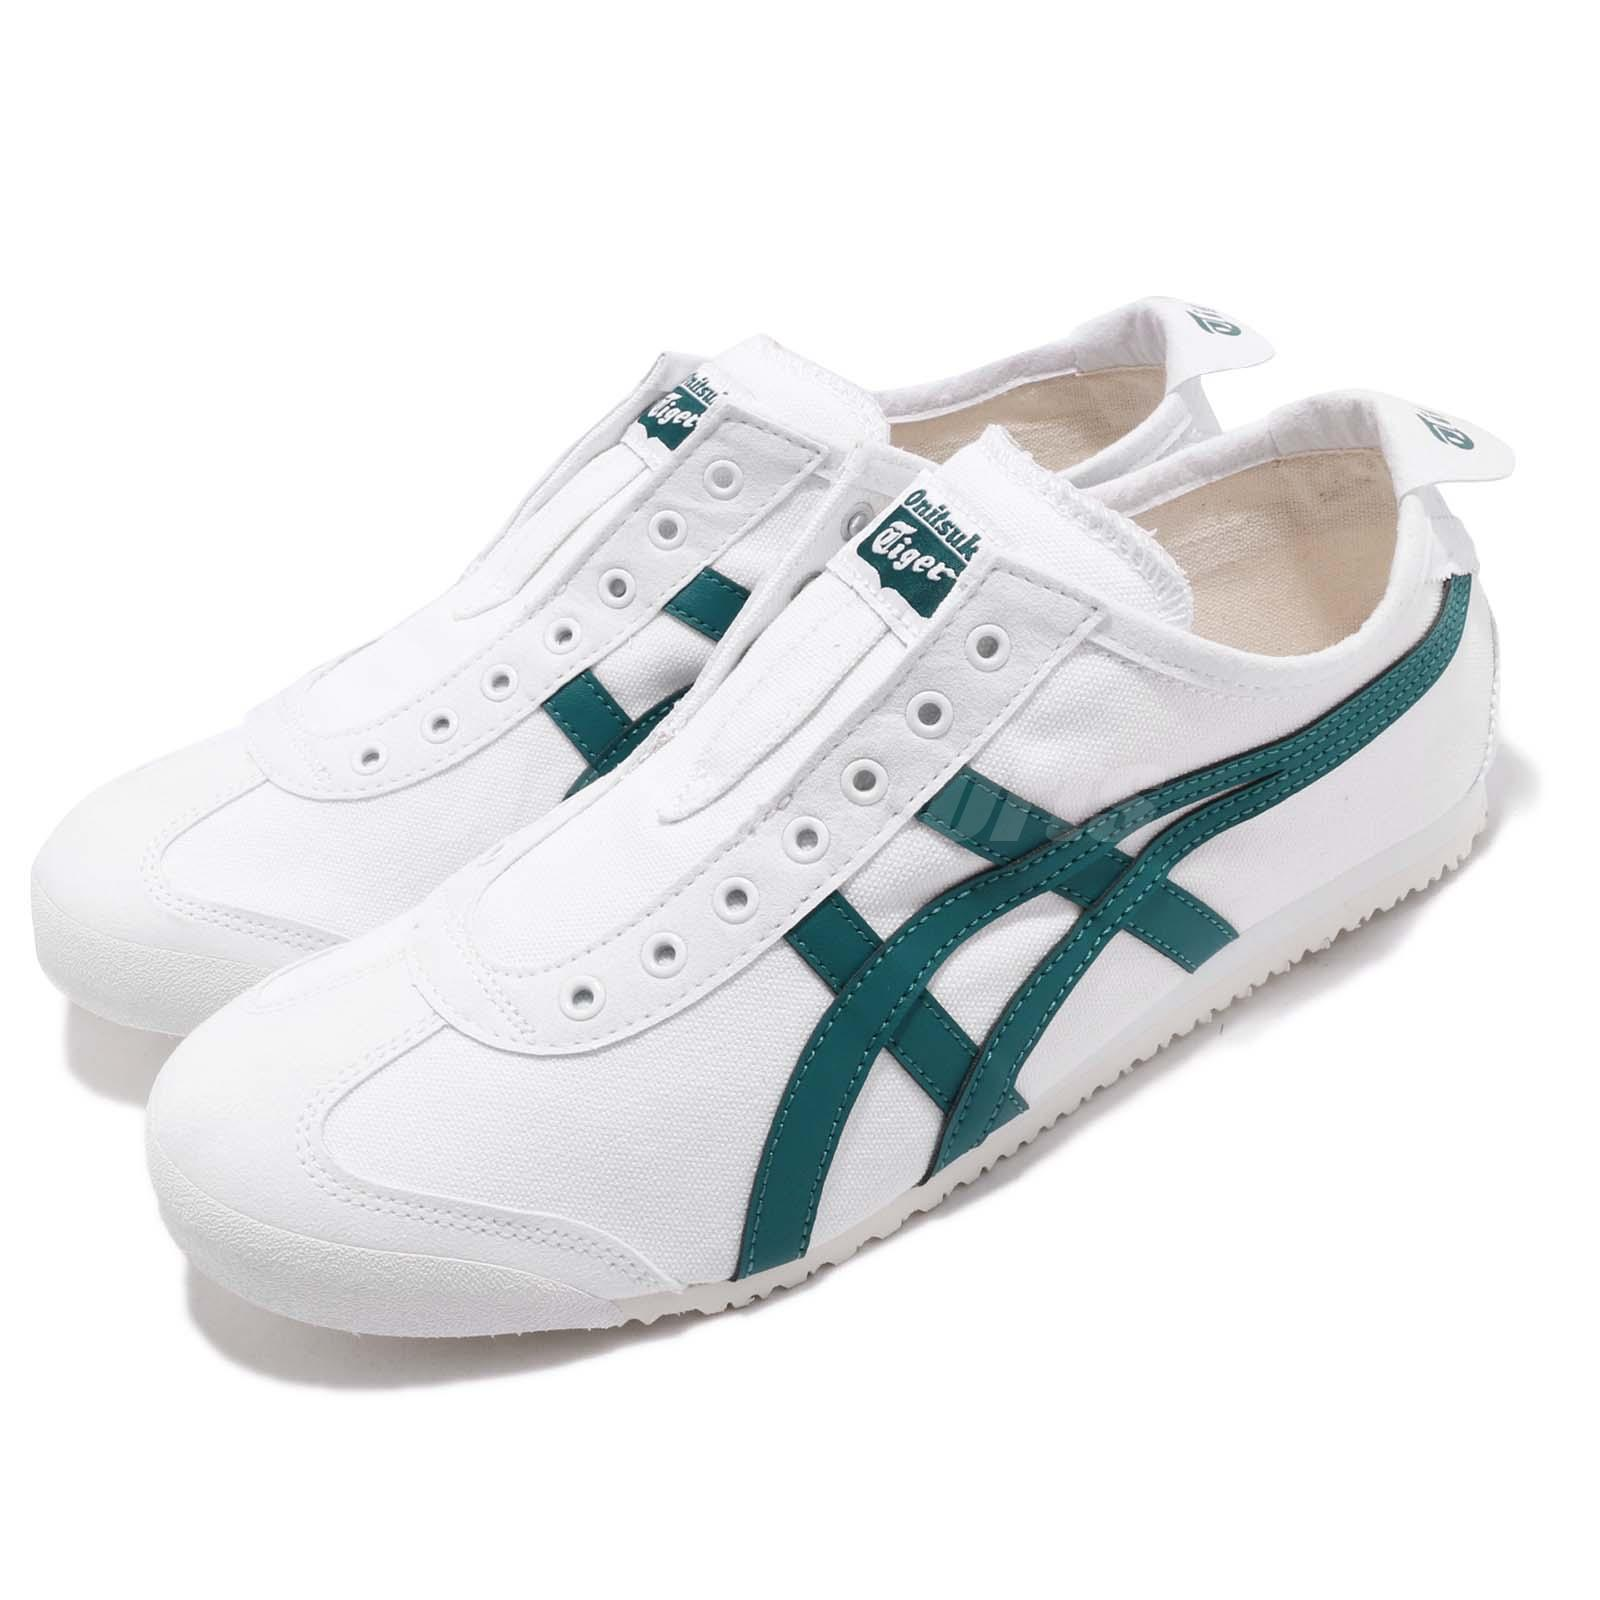 save off 4bfd0 54c29 Details about Asics Onitsuka Tiger Mexico 66 Slip-On White Green Men  Classic Shoe 1183A360-102